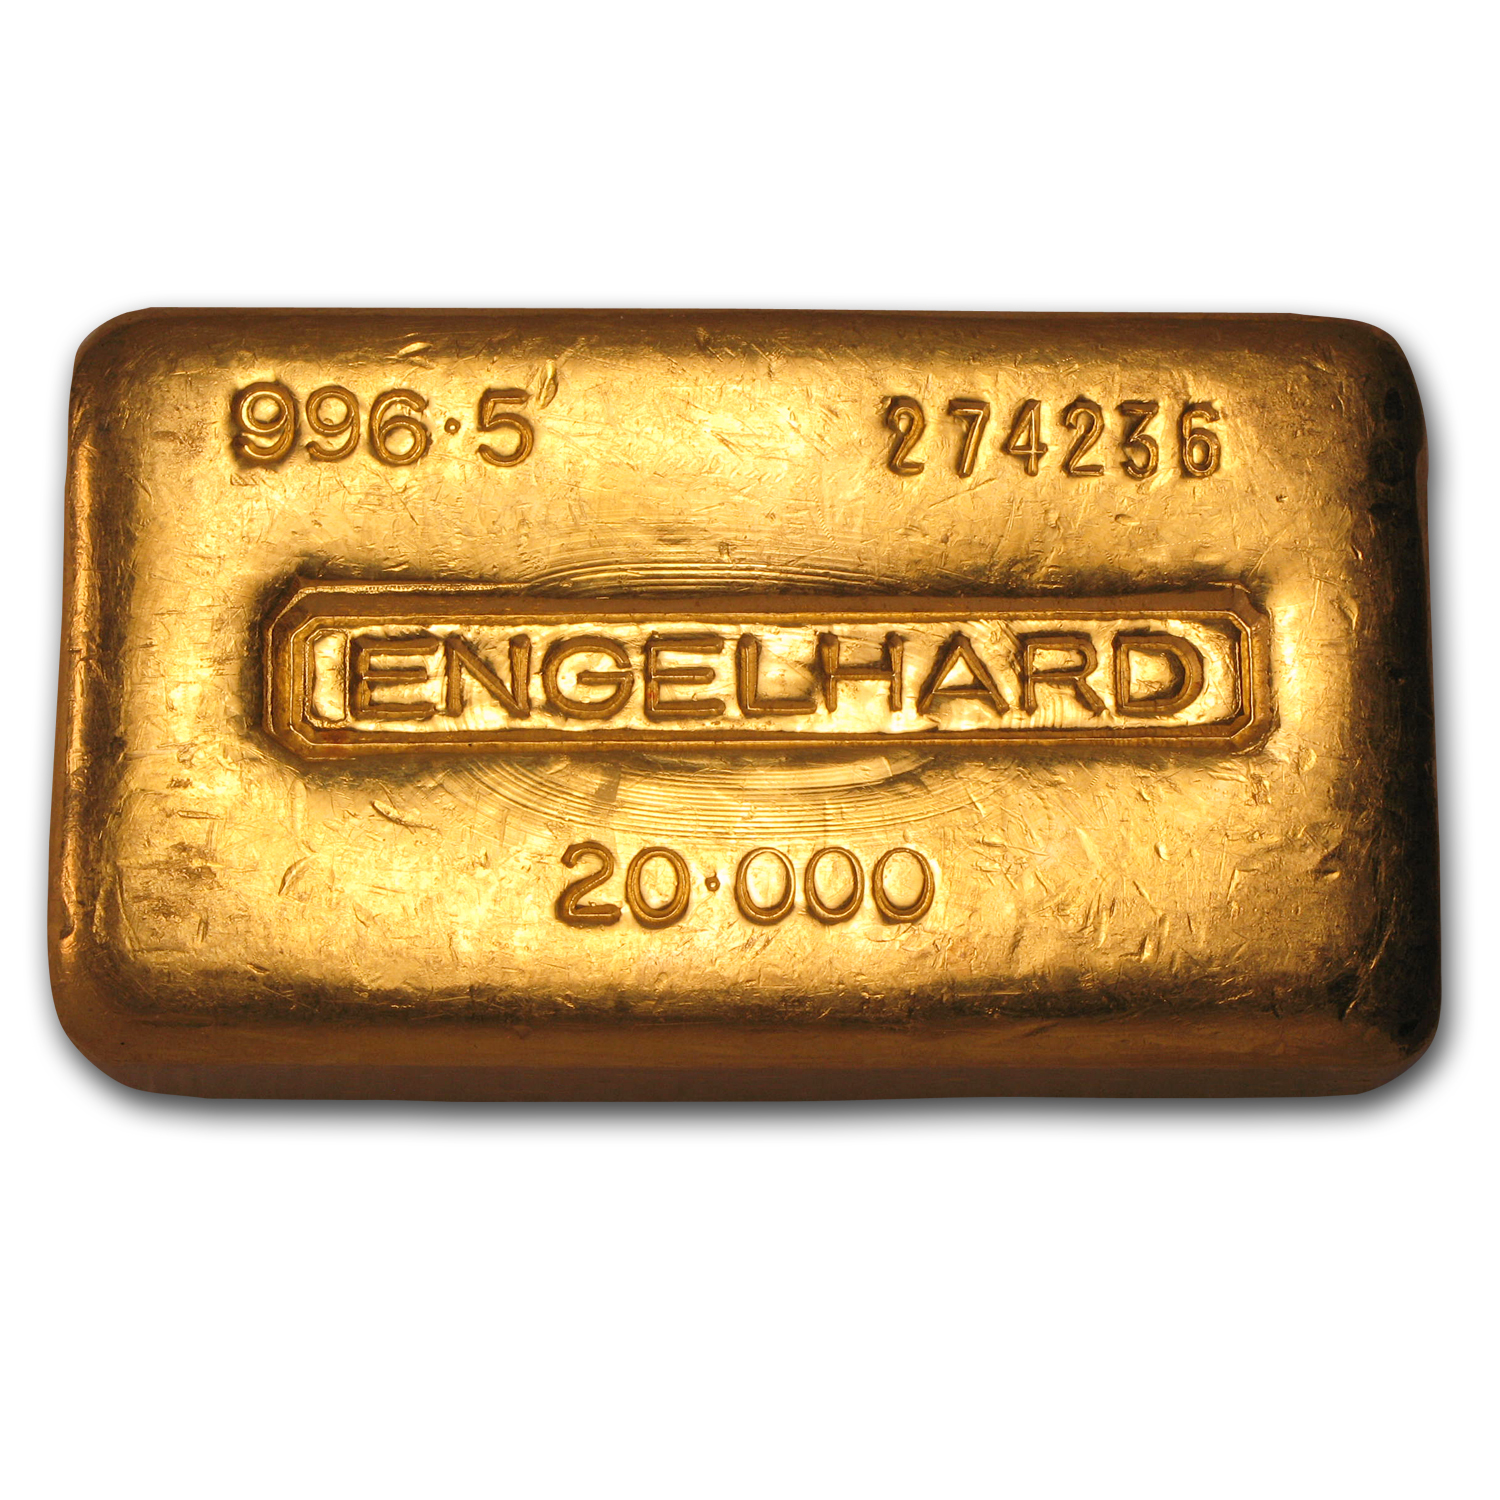 20 oz Gold Bars - Engelhard (Loaf-Style/Poured, .996.5 Fine)